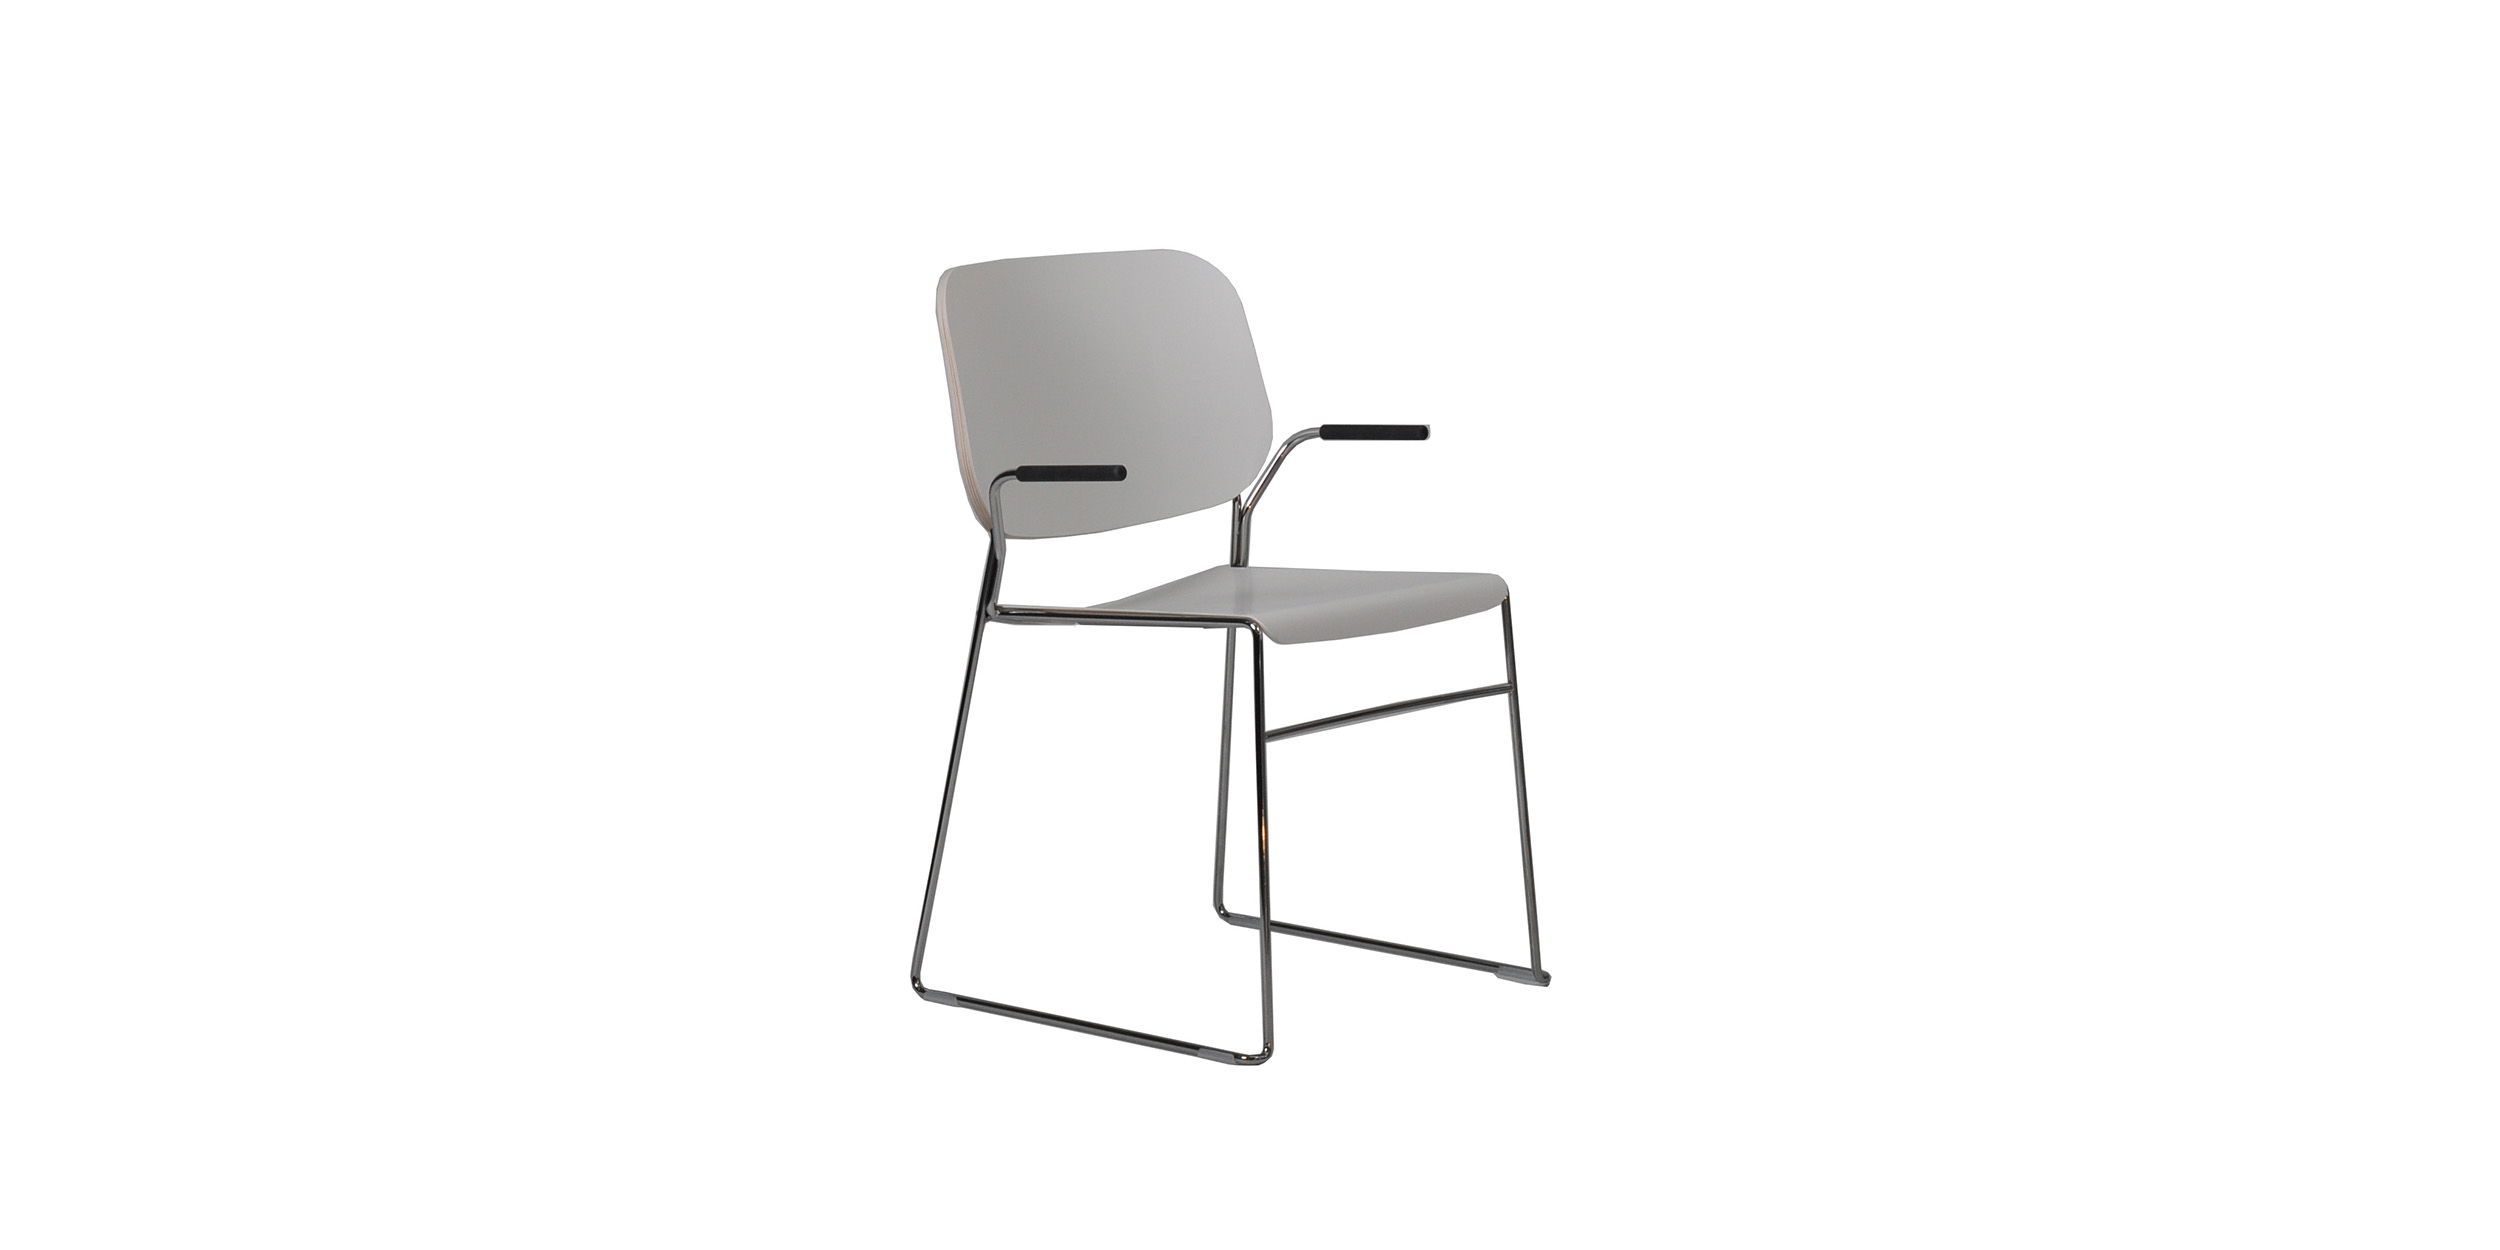 Lite Stackable Armchair By Swedish Broberg Ridderstrale